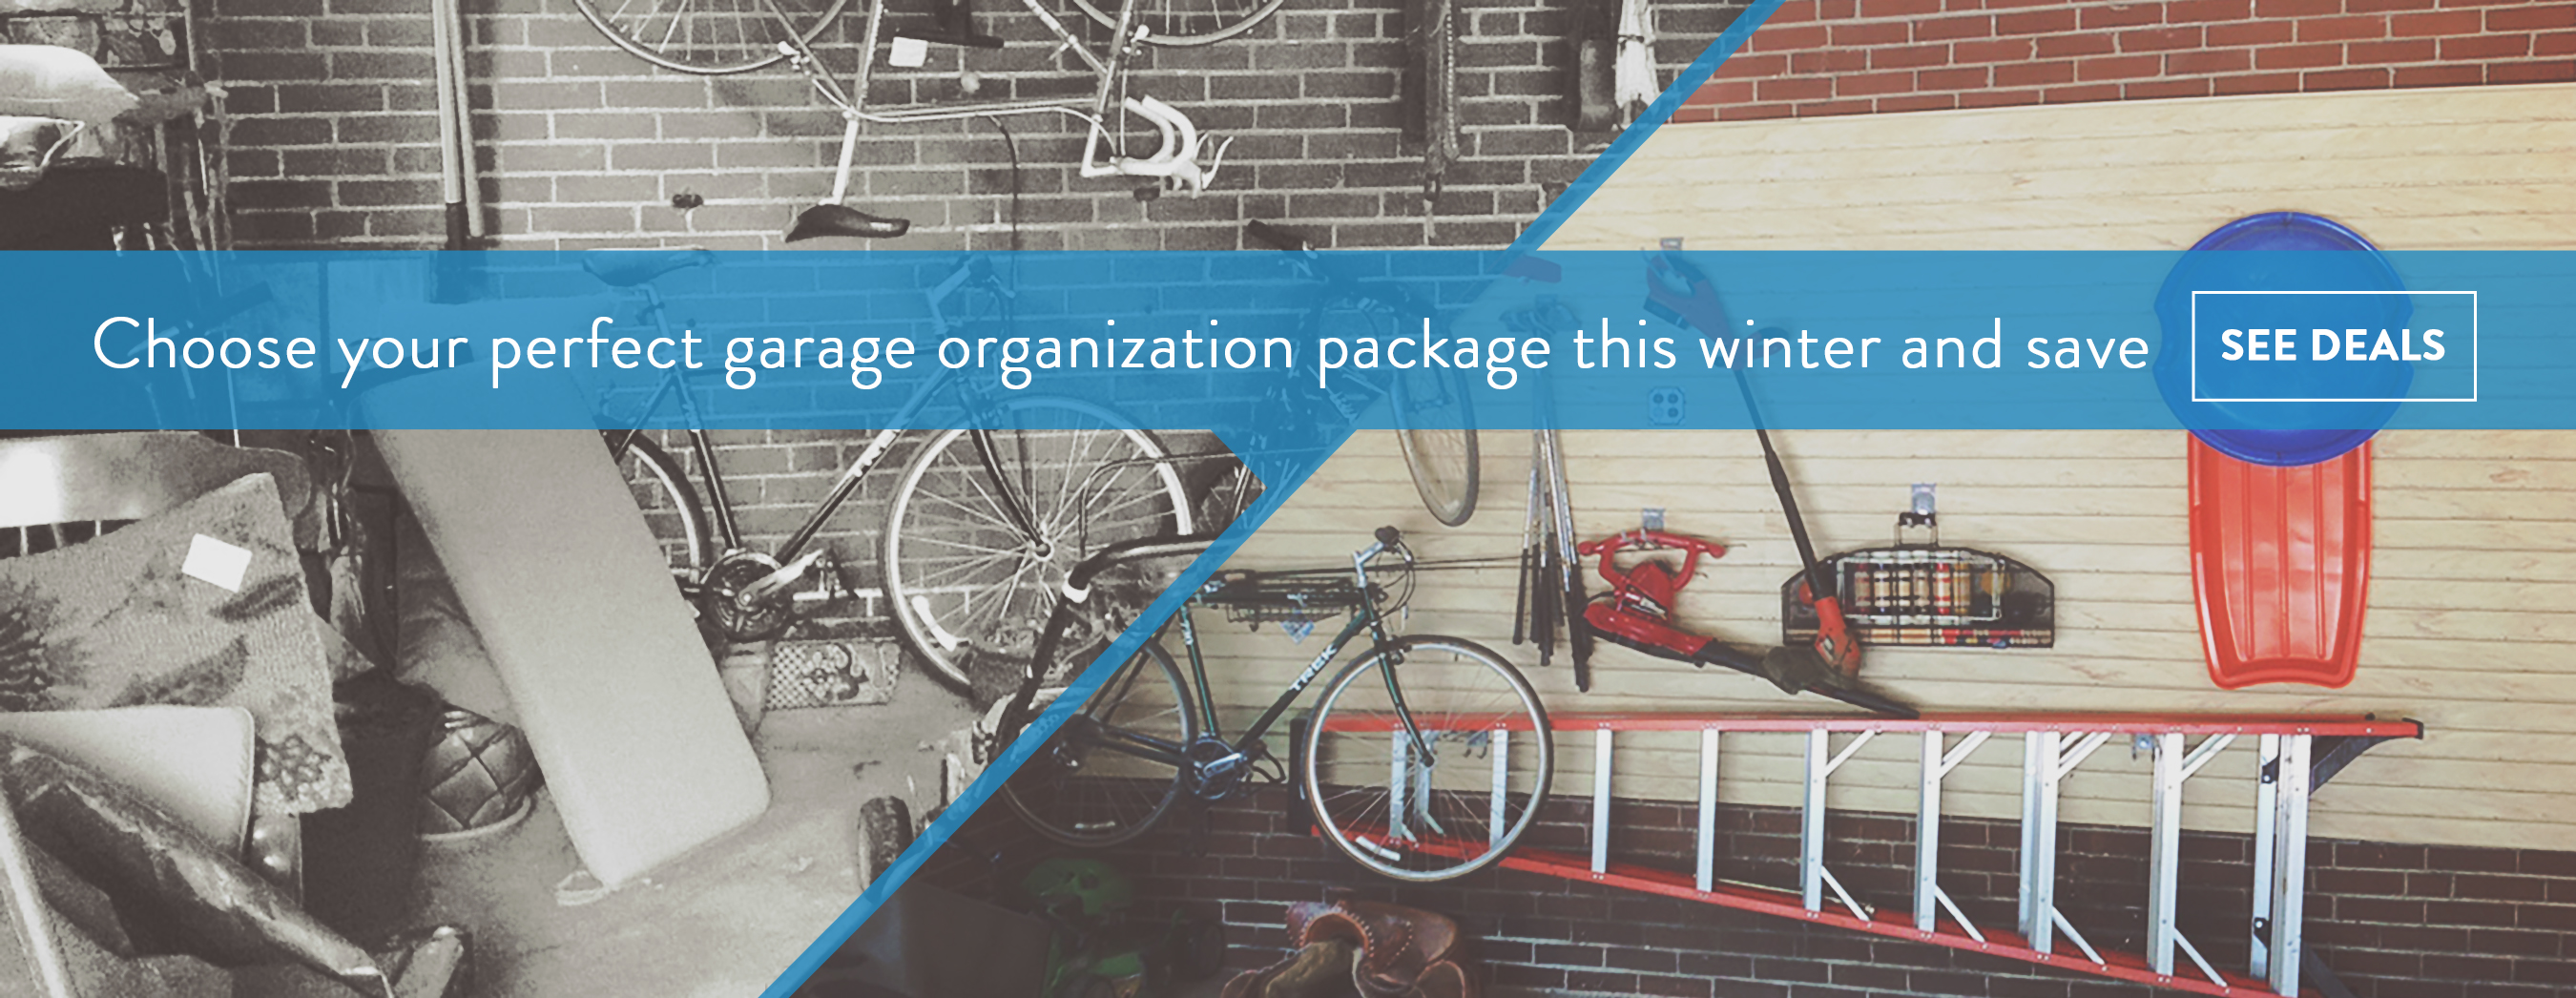 Choose your perfect garage organization package this winter and save